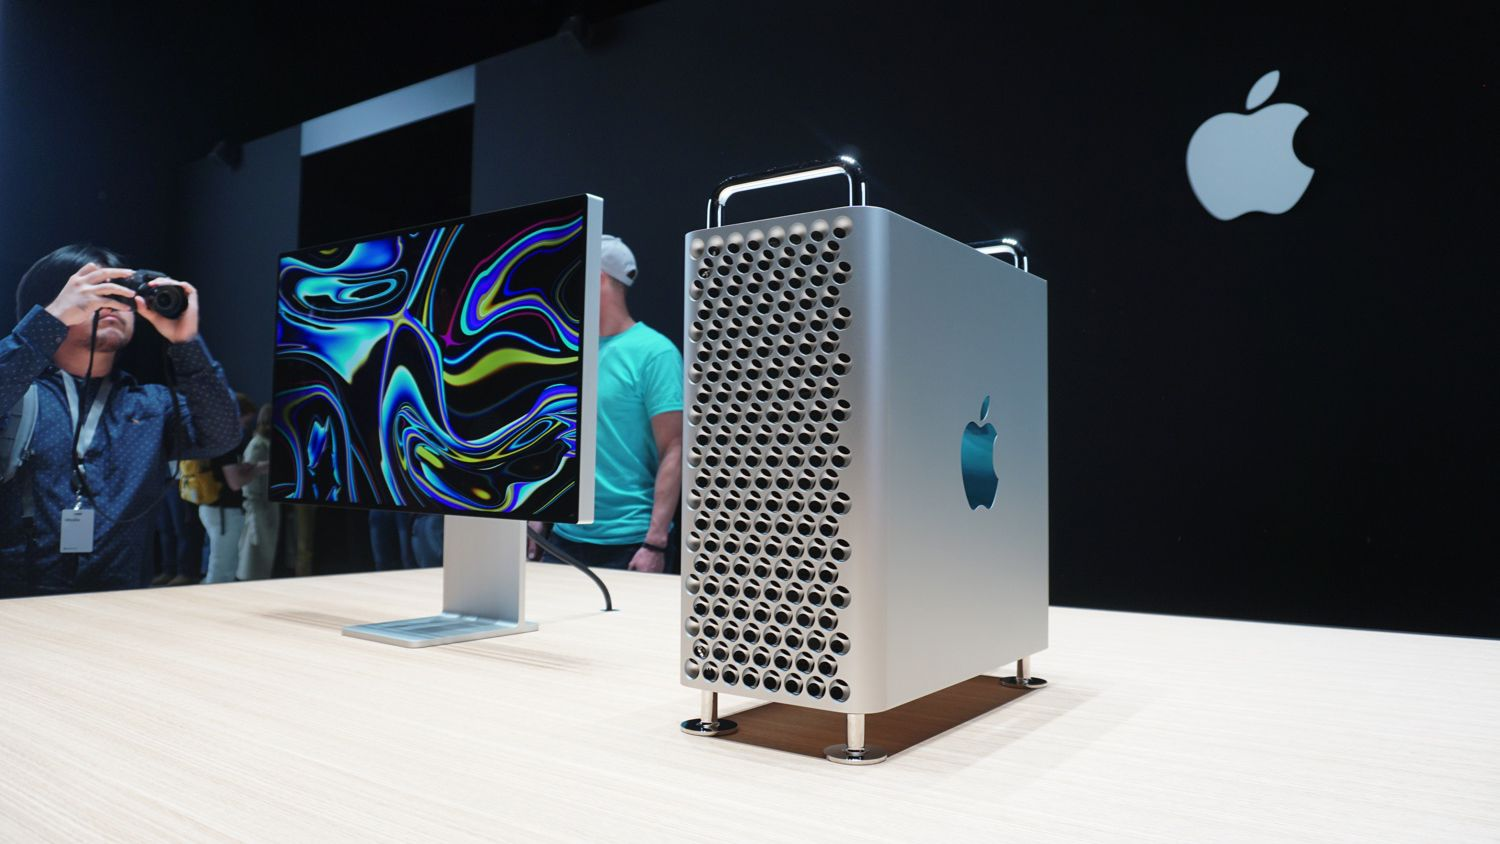 Apple's new $6,000 Mac Pro is a monster of a computer inside and out - Tech - Mashable ME